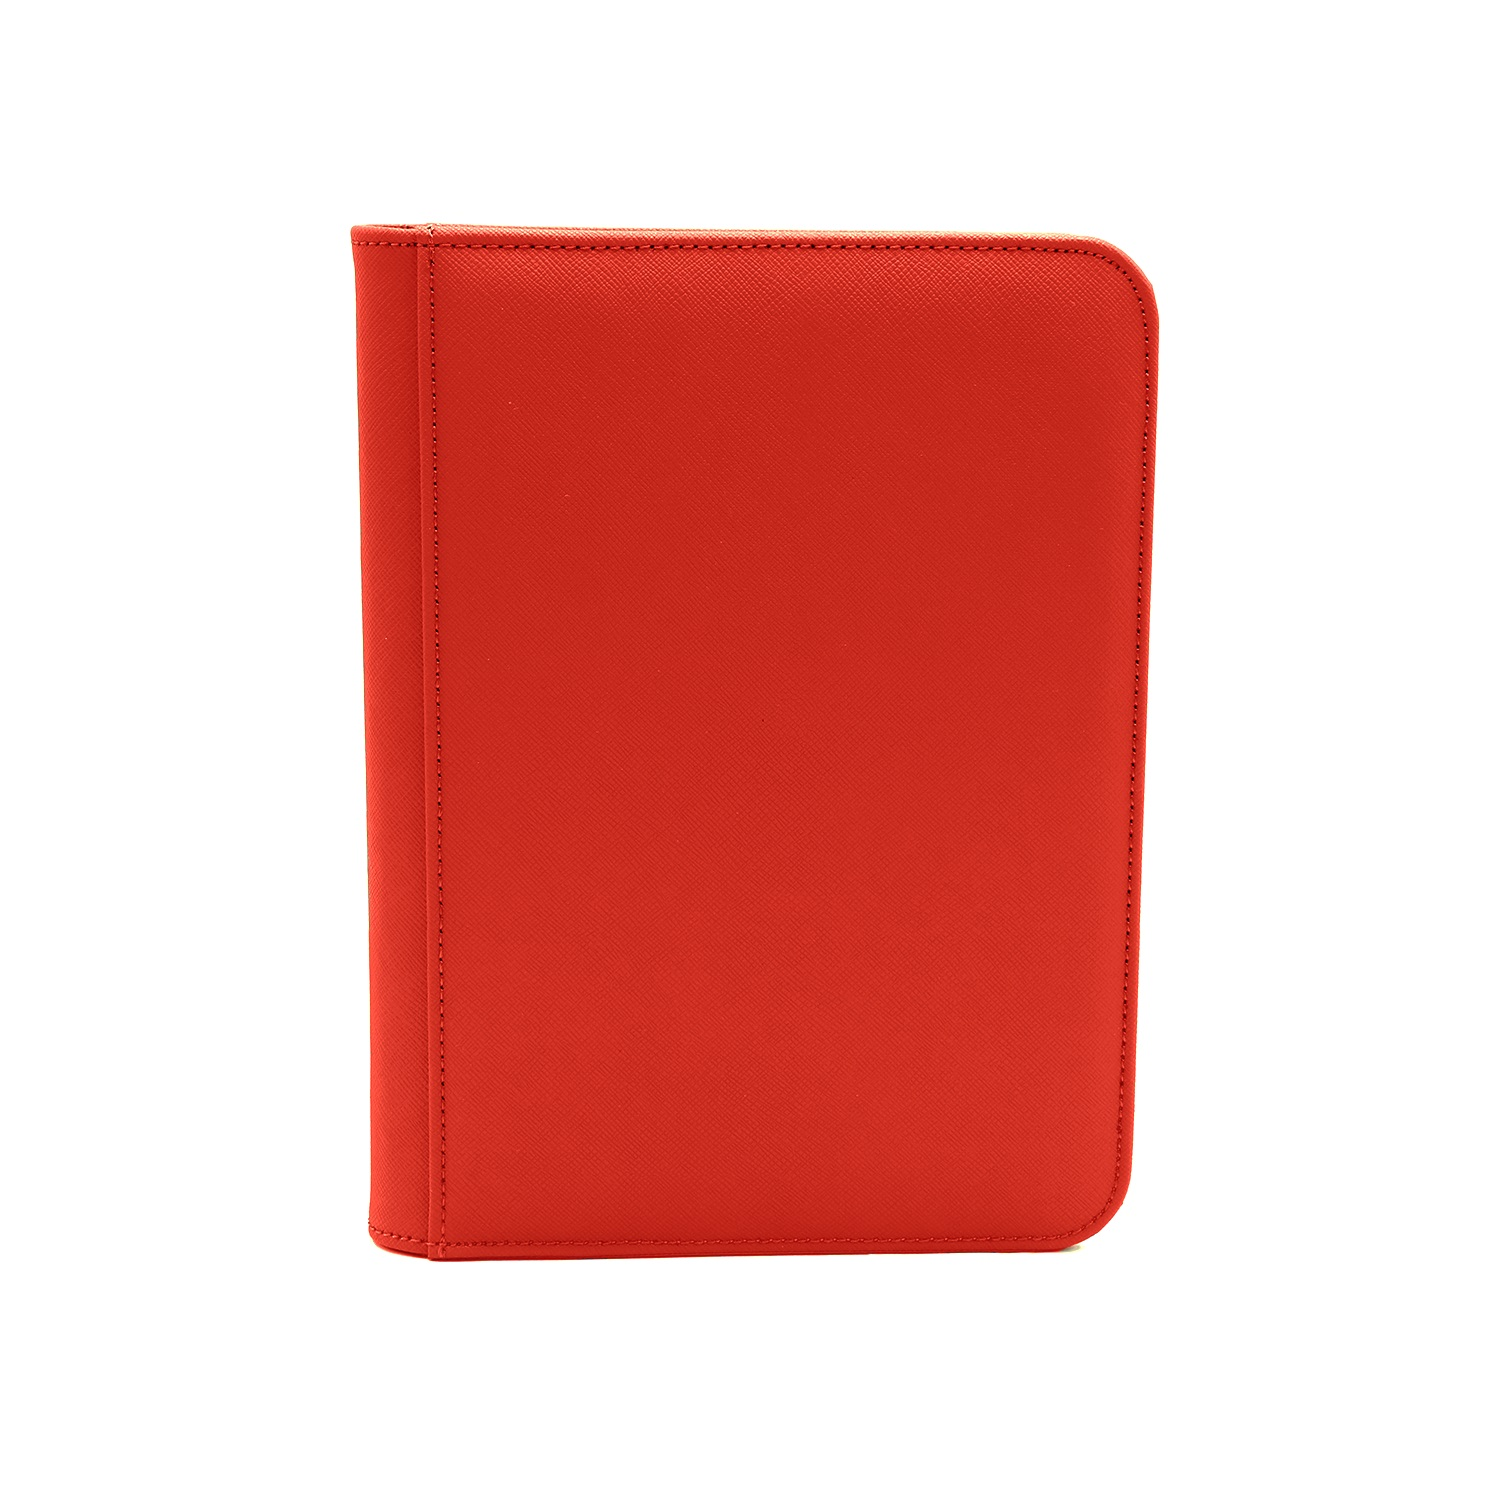 Dex Protection - Dex Zipper Binder 4 - Red